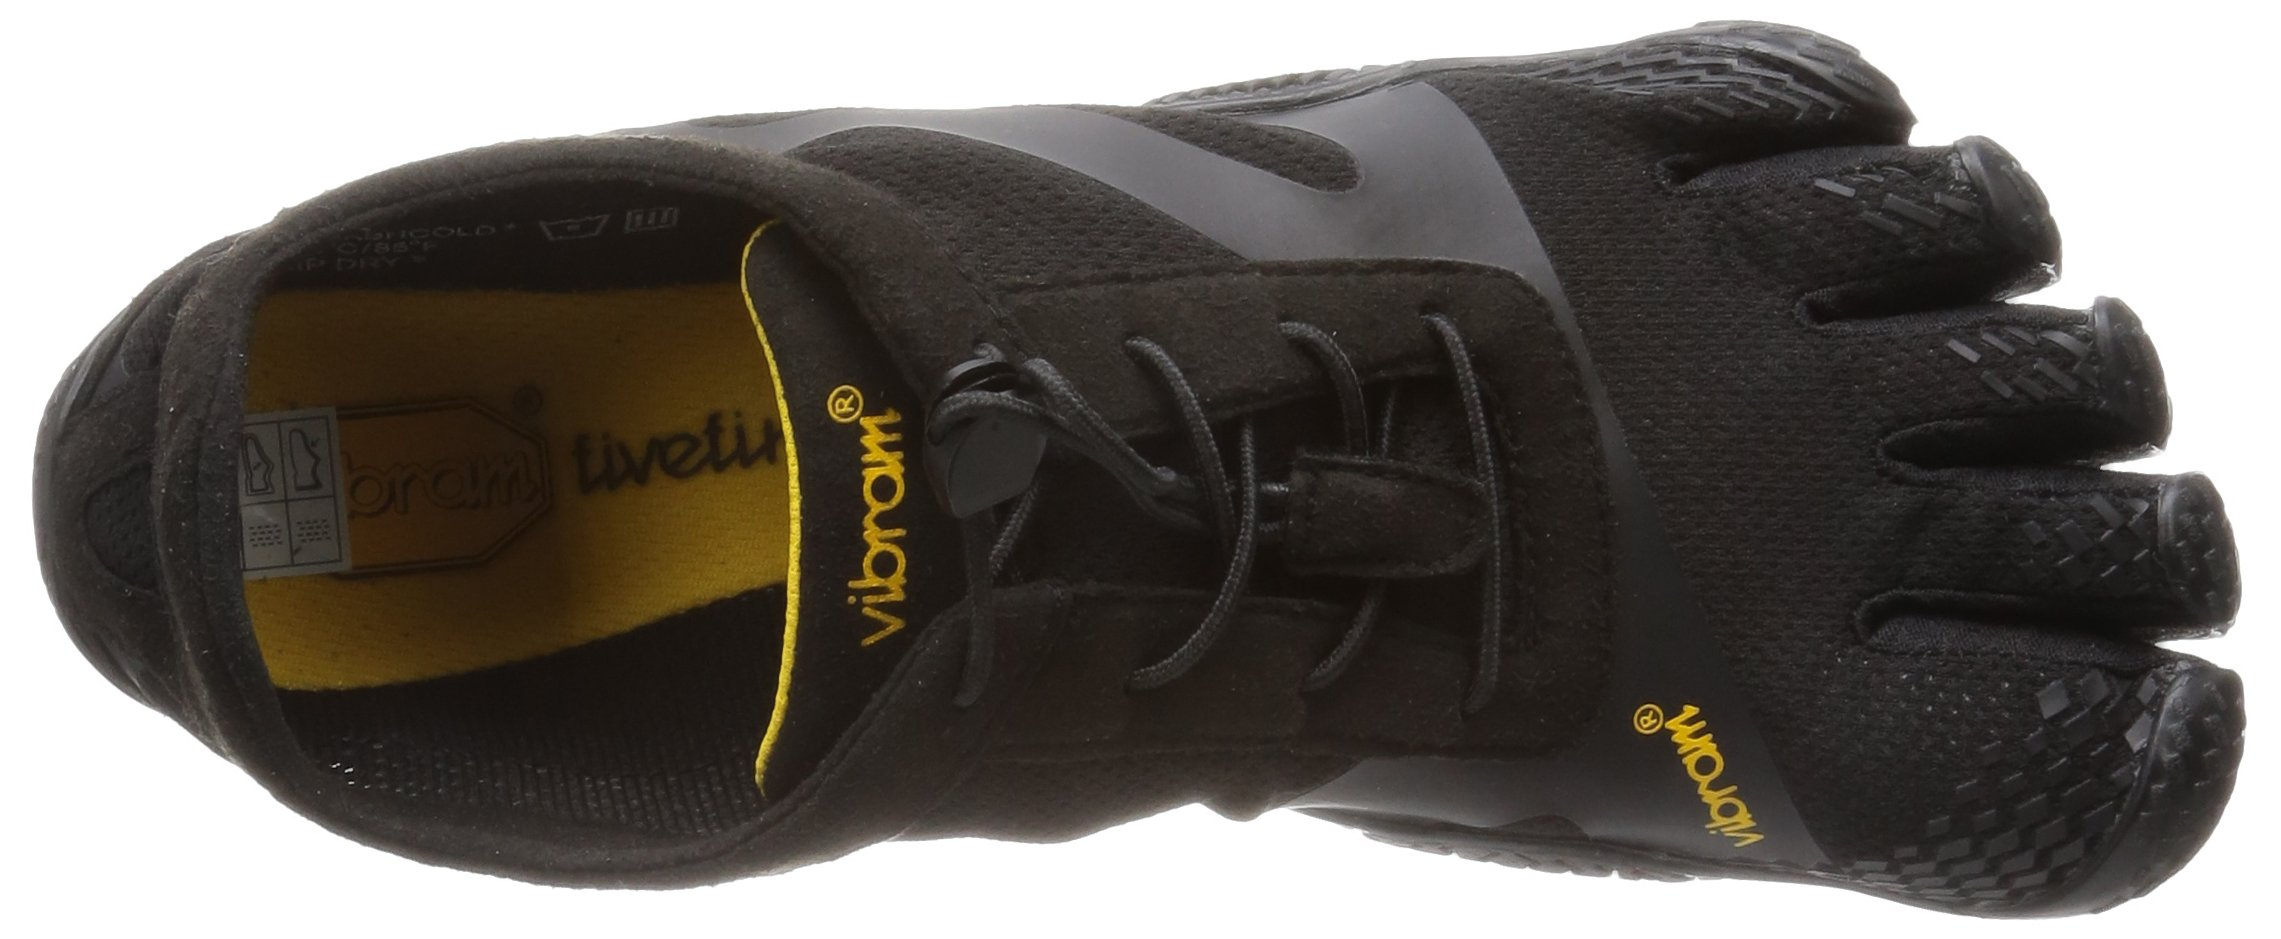 Vibram Men's KSO EVO Cross Training Shoe,Black,41 EU/8.5-9.0 M US by Vibram (Image #11)